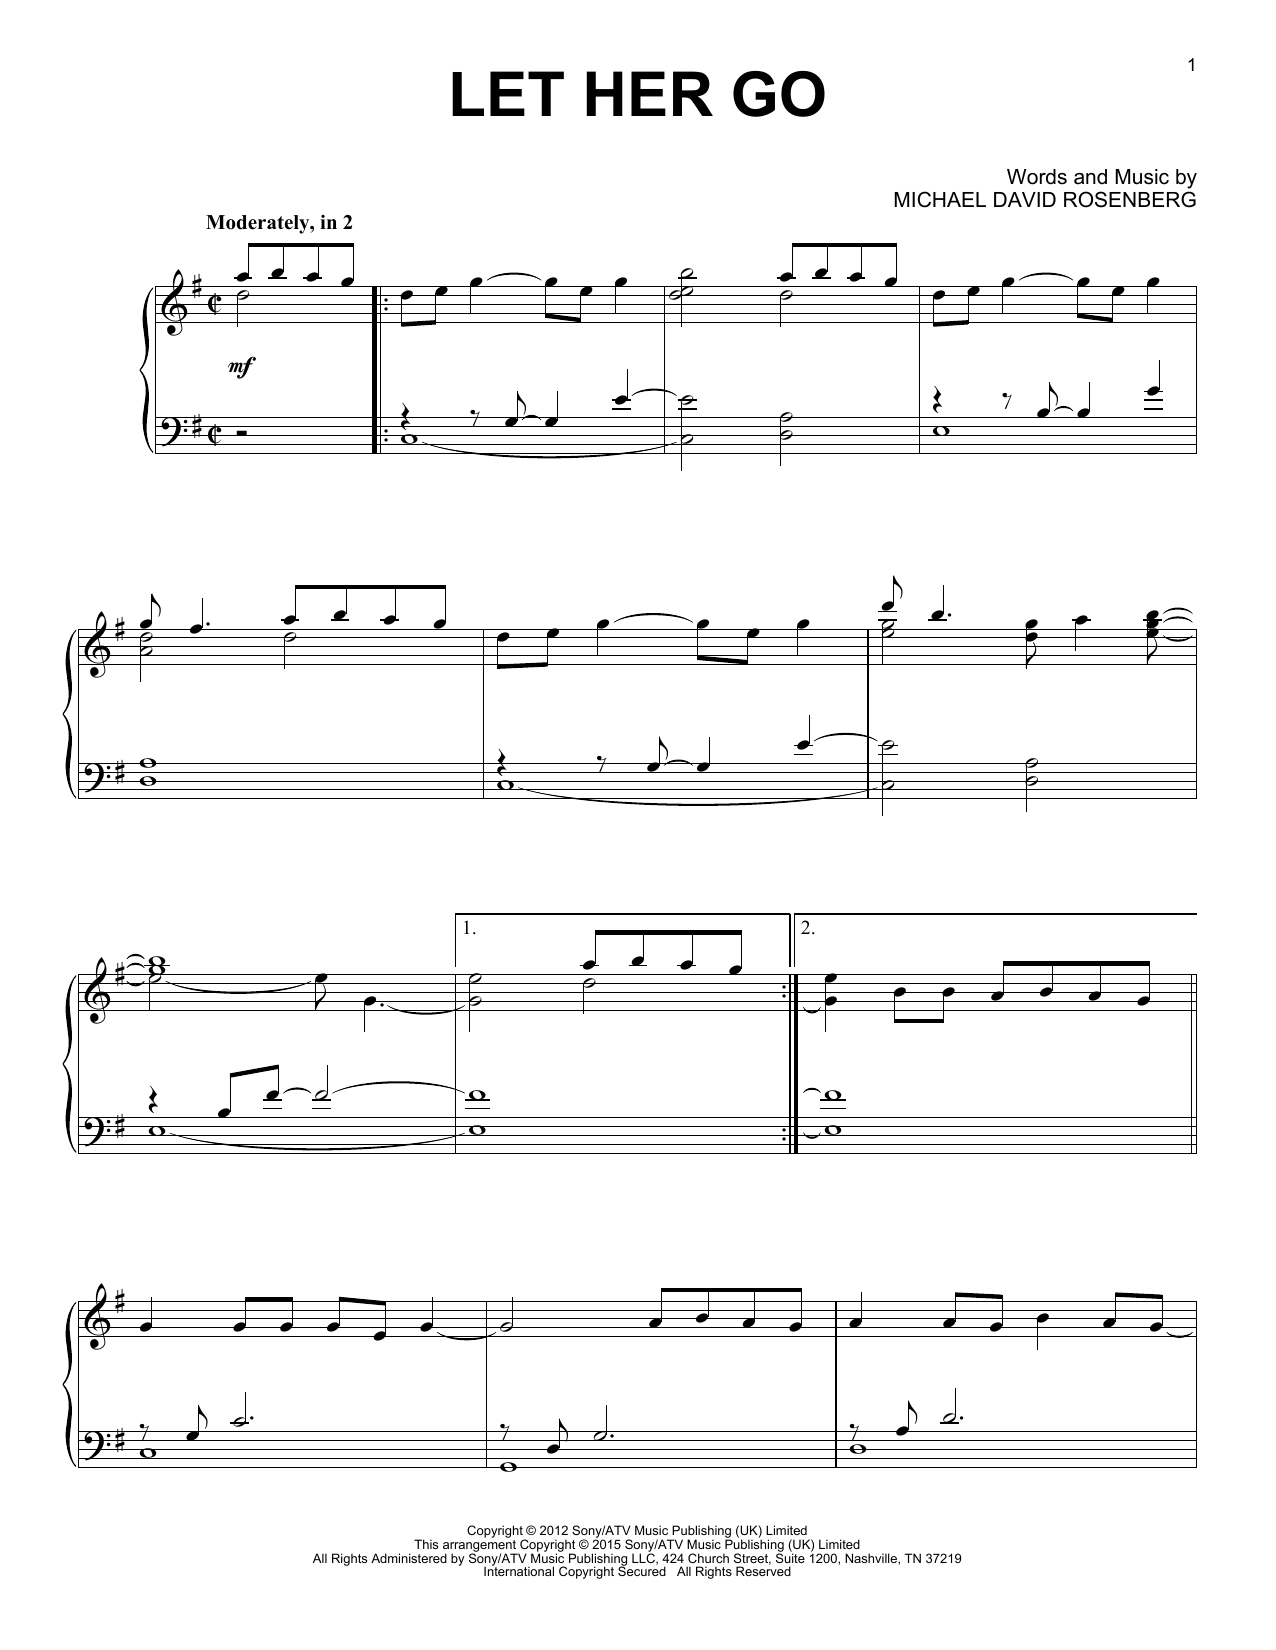 Let Her Go piano sheet music by Passenger - Solo piano